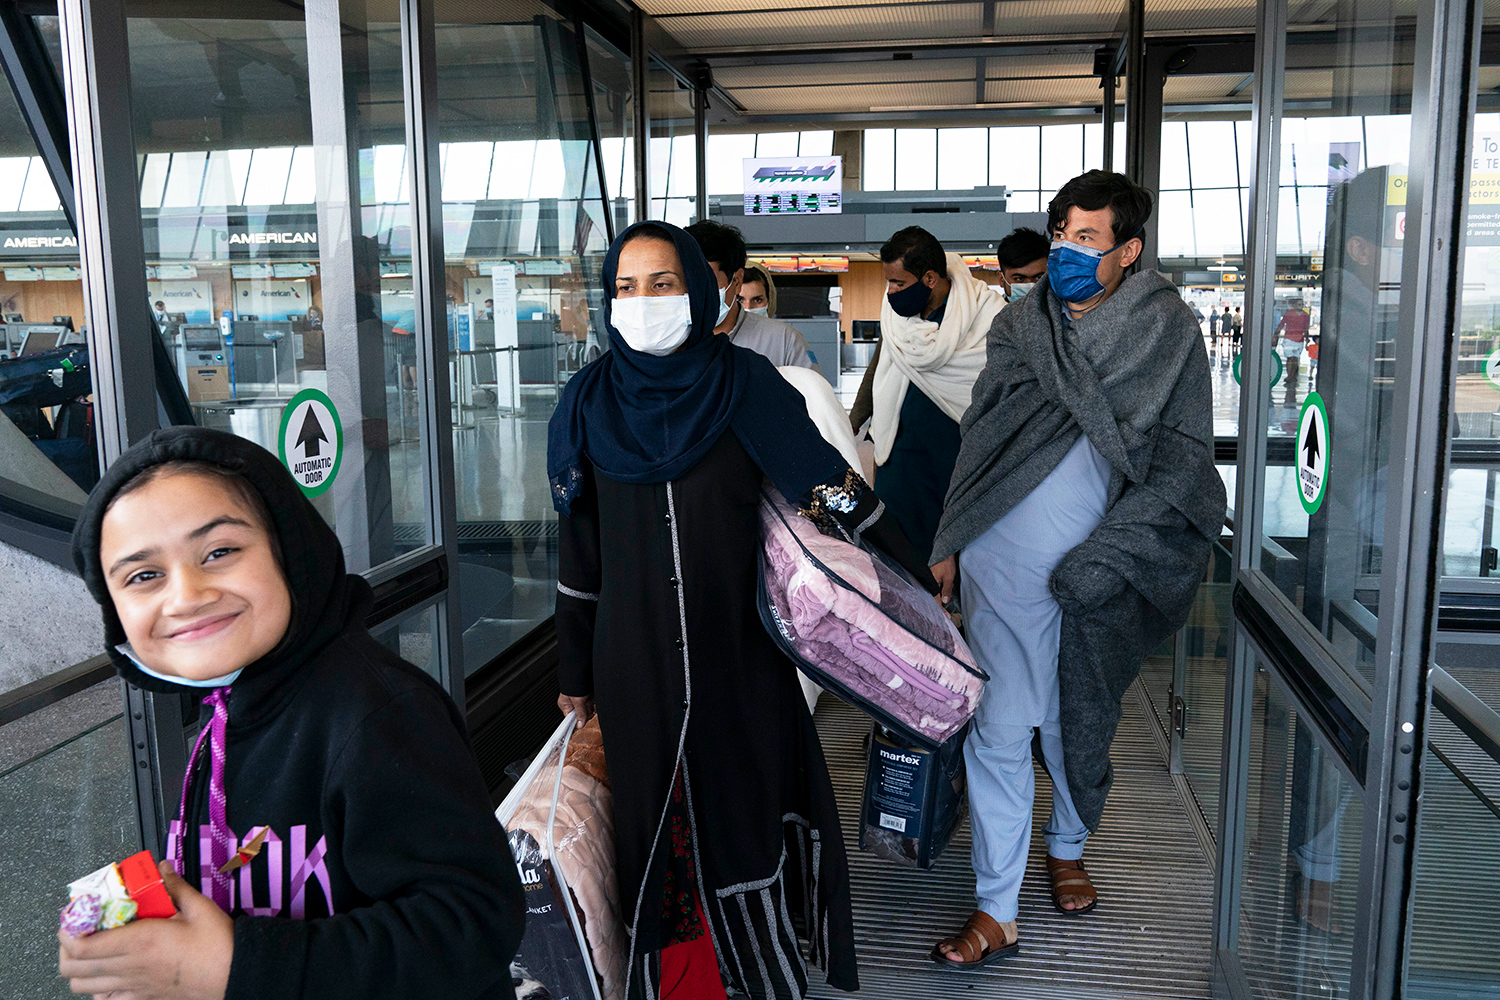 Families evacuated from Kabul, Afghanistan, walk through the terminal before boarding a bus after they arrived at Washington Dulles International Airport, in Chantilly, Va., on Wednesday, Aug. 25, 2021.